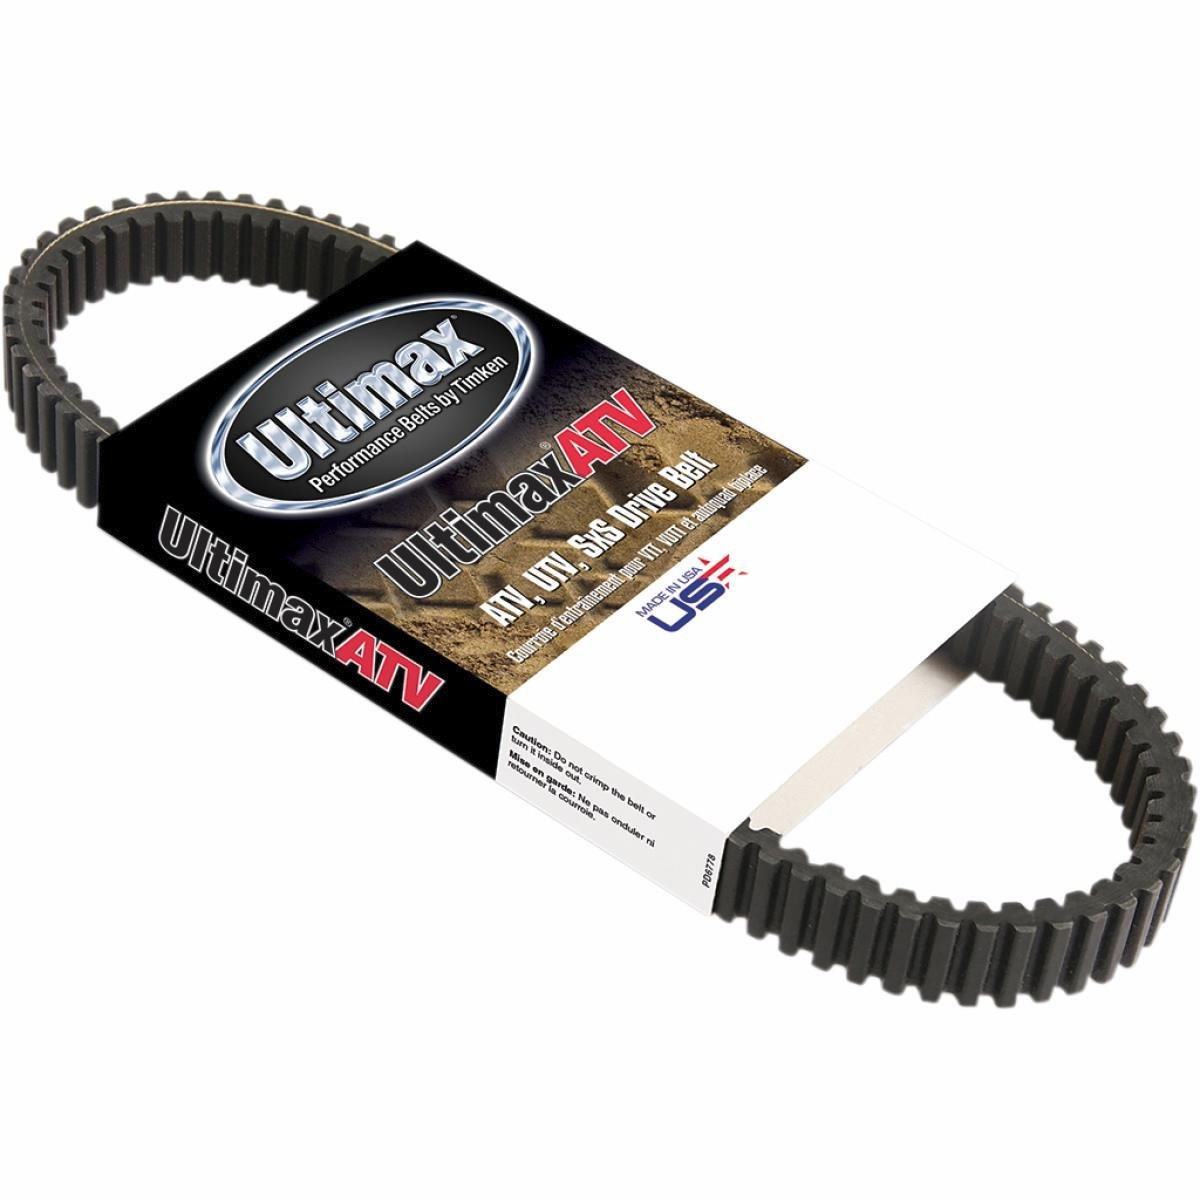 BK Power Systems UA441 Carlisle Ultimax Hypermax Belt, Rubber 50000522 PU-11420419